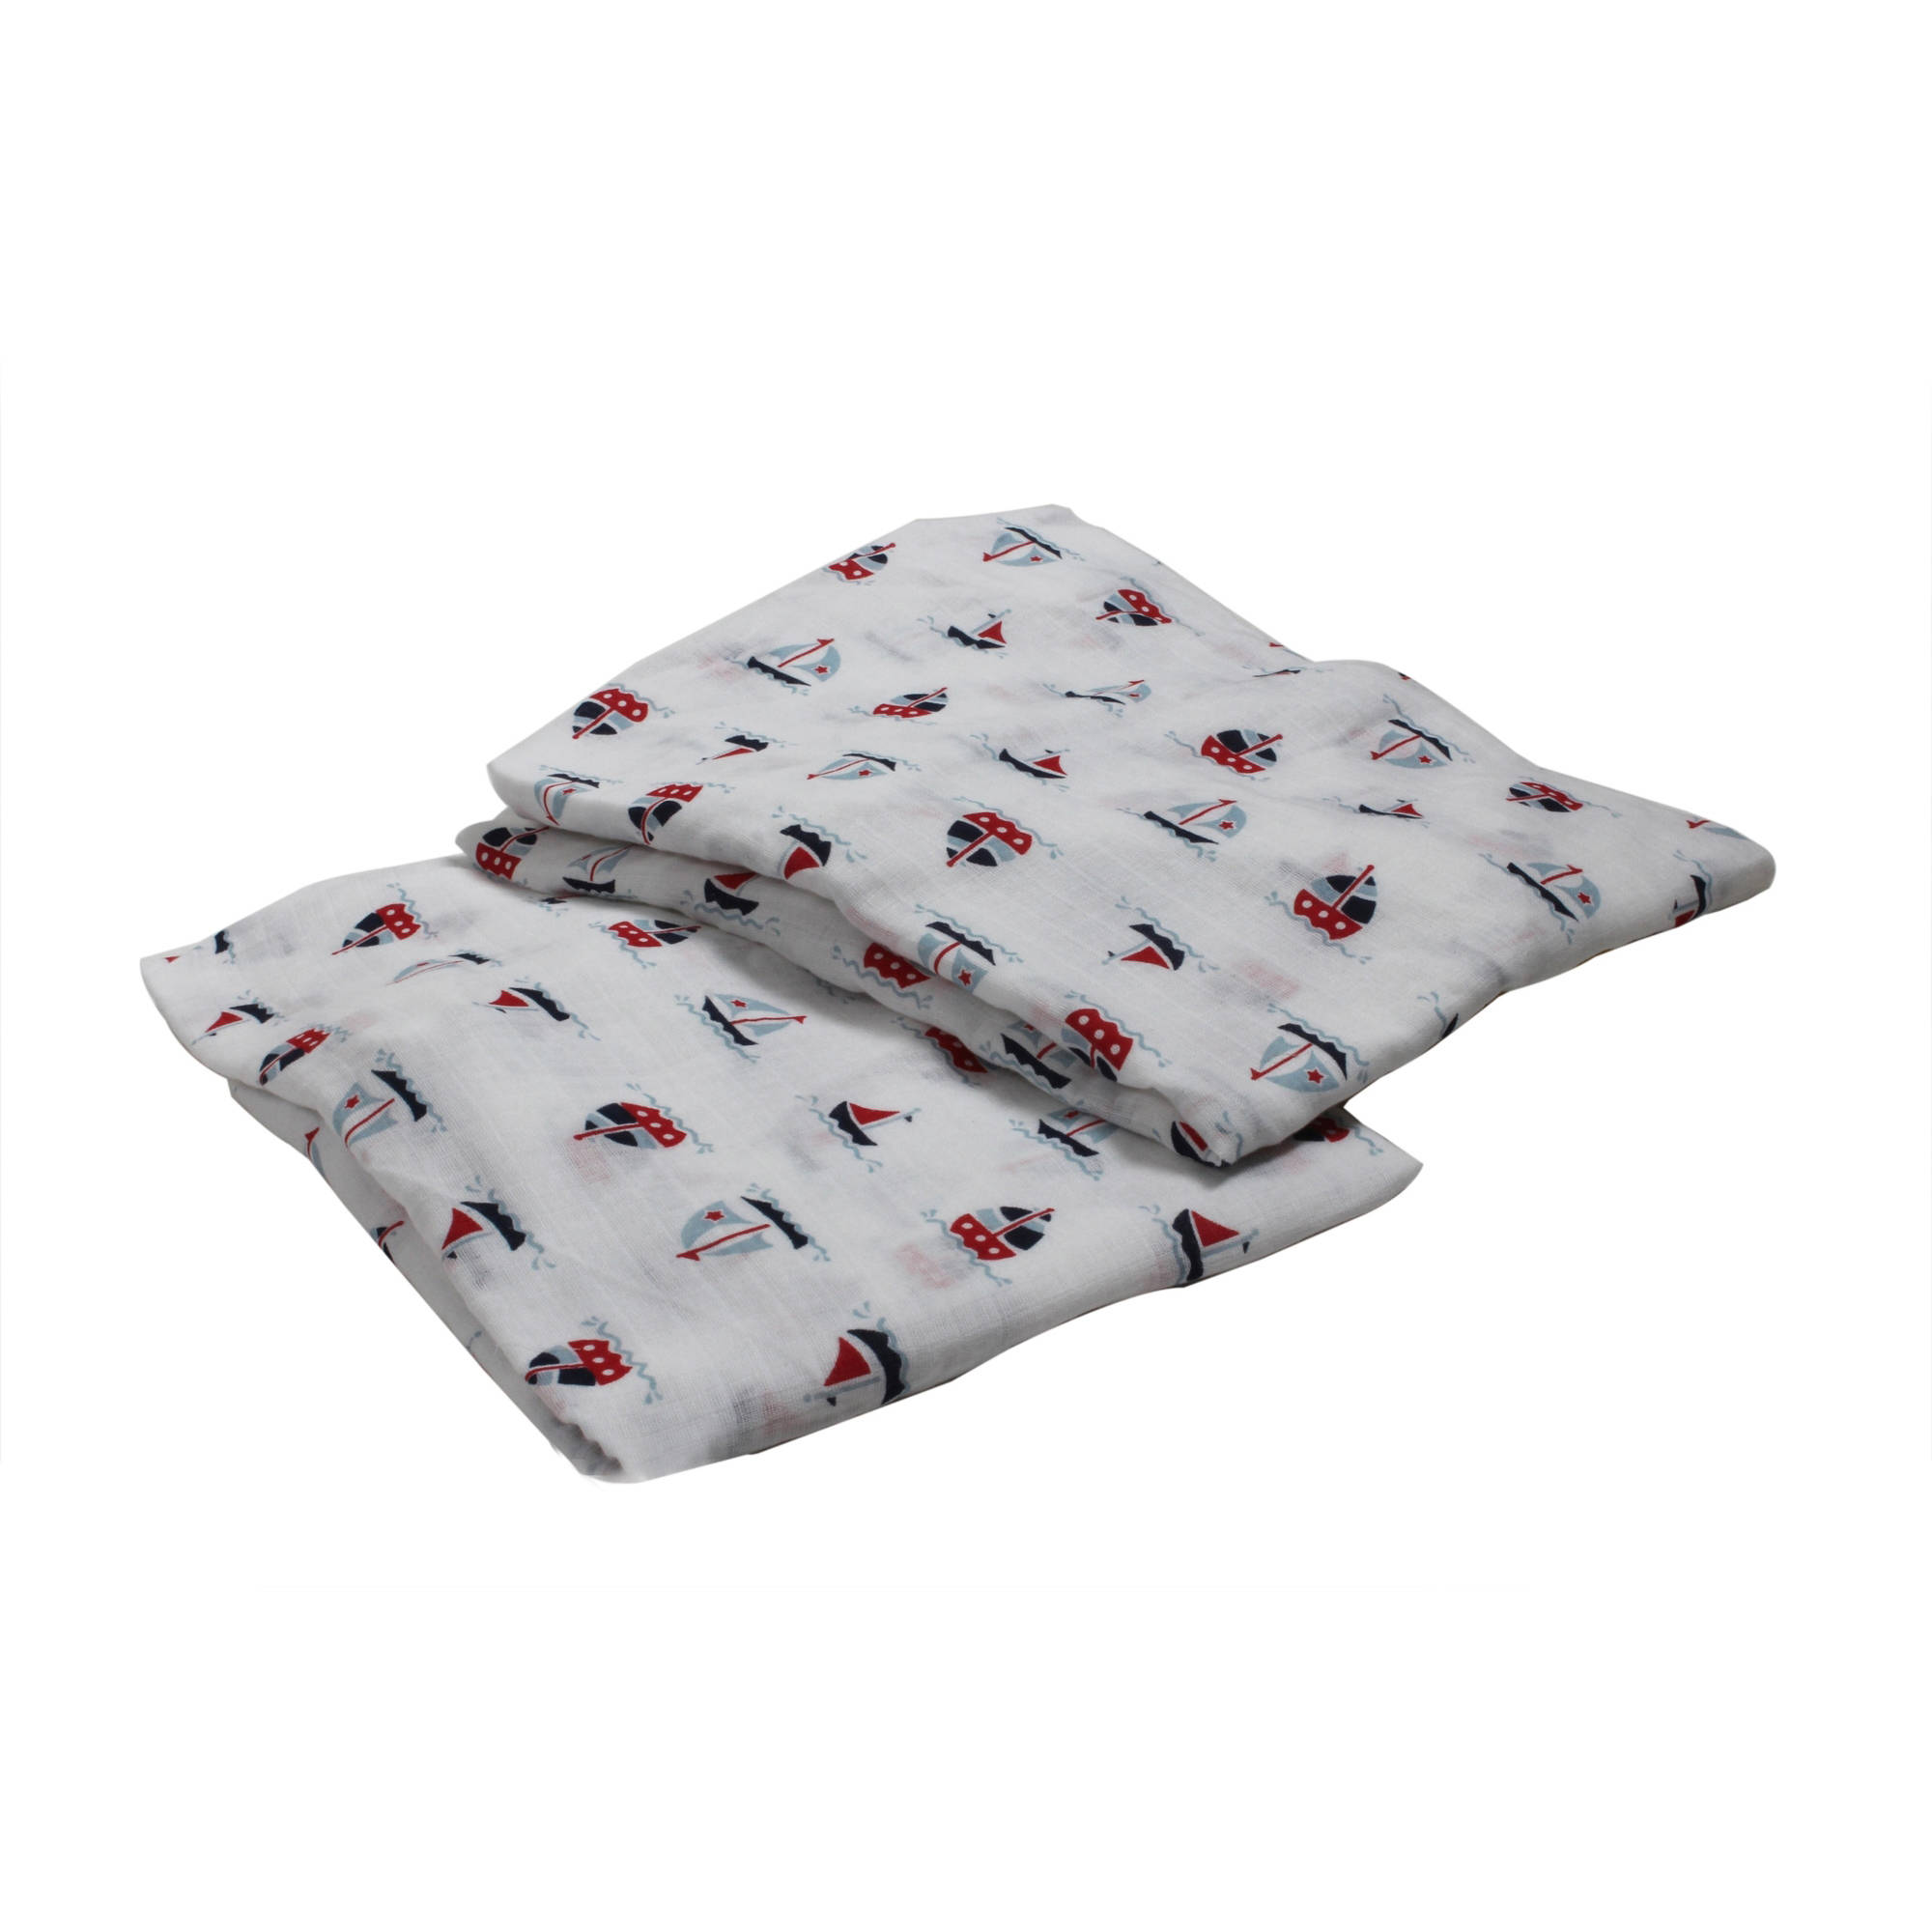 Bacati - Little Sailor Boats Crib/Toddler Bed Fitted Sheets 100% Cotton Muslin 2 Pack, Blue/Red